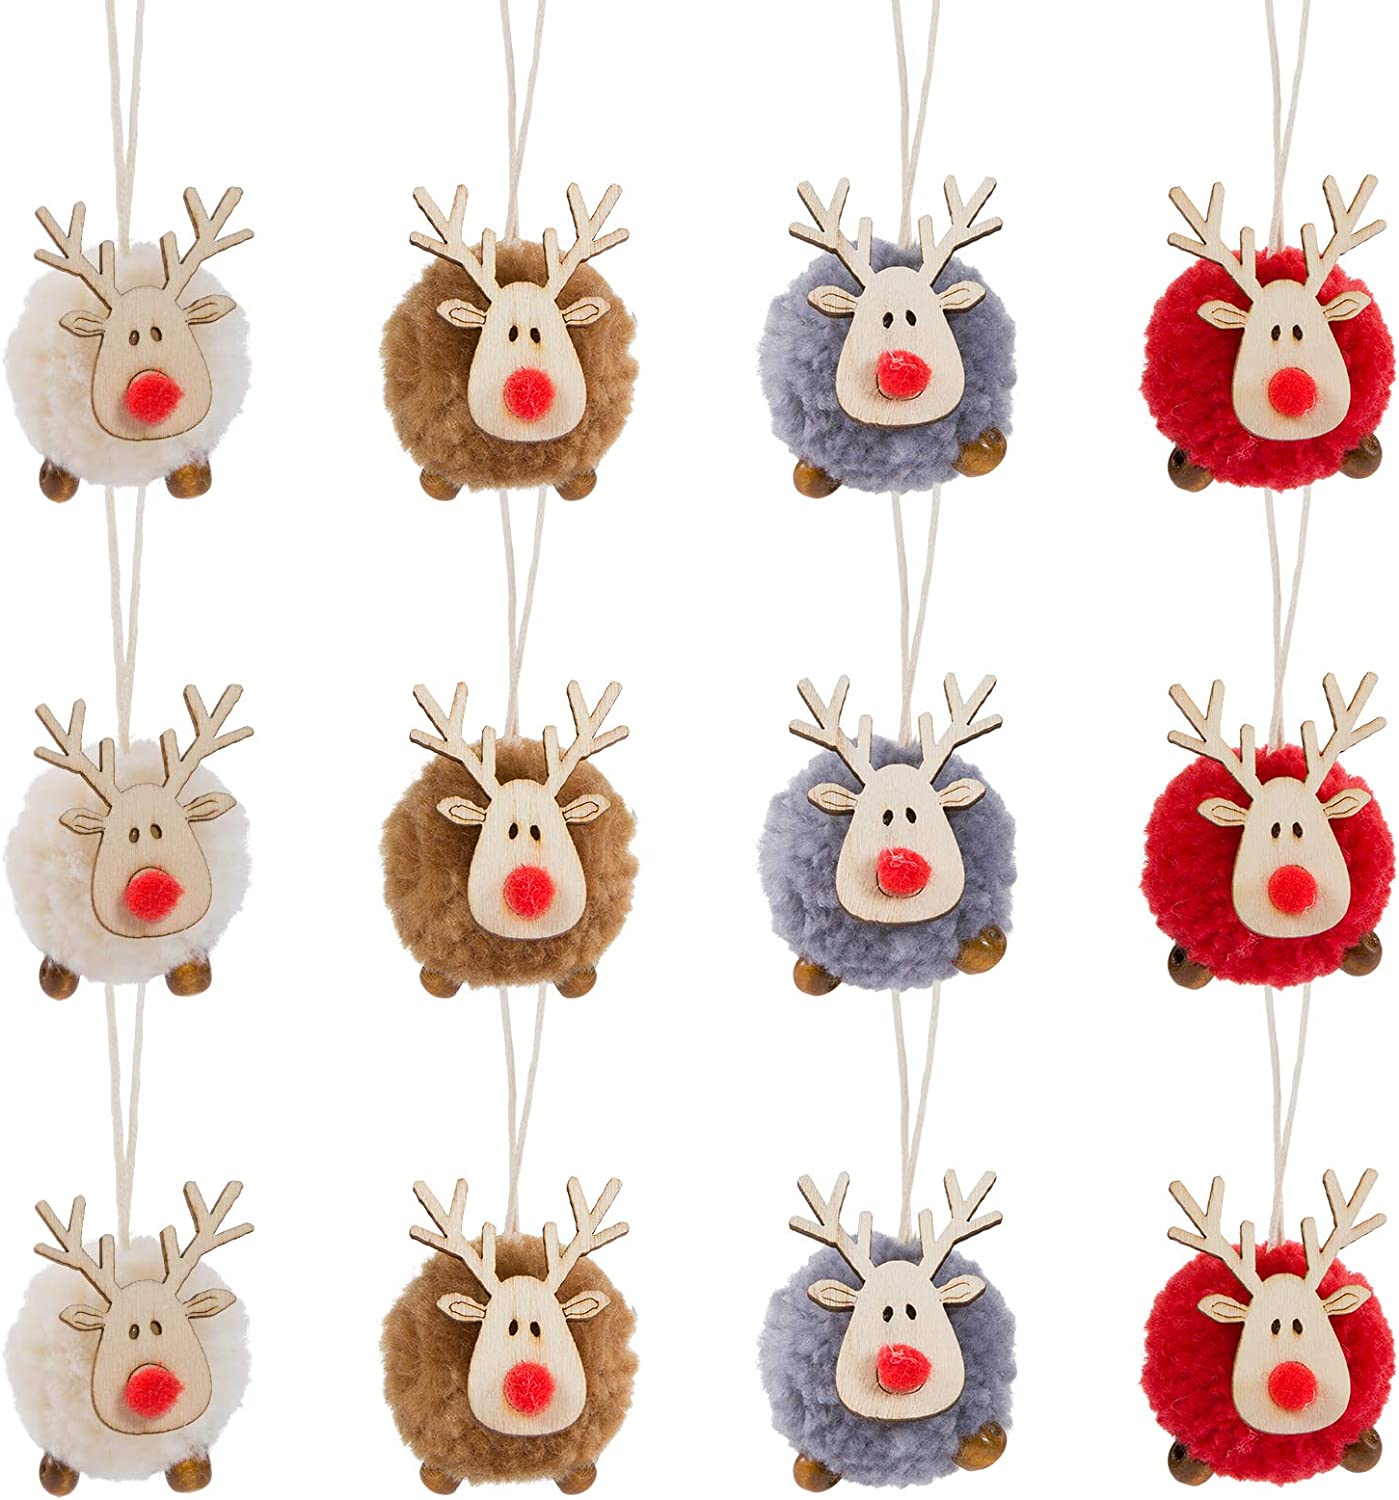 Biubee Pack of 12 Christmas Felt Wooden Elk Hanging Ornaments- 4 Colors Adorable Wooden Wool Felt Reindeer Christmas Tree Hanging Pendants Decorations Xmas Deer Crafts for Xmas Party Tree Decor